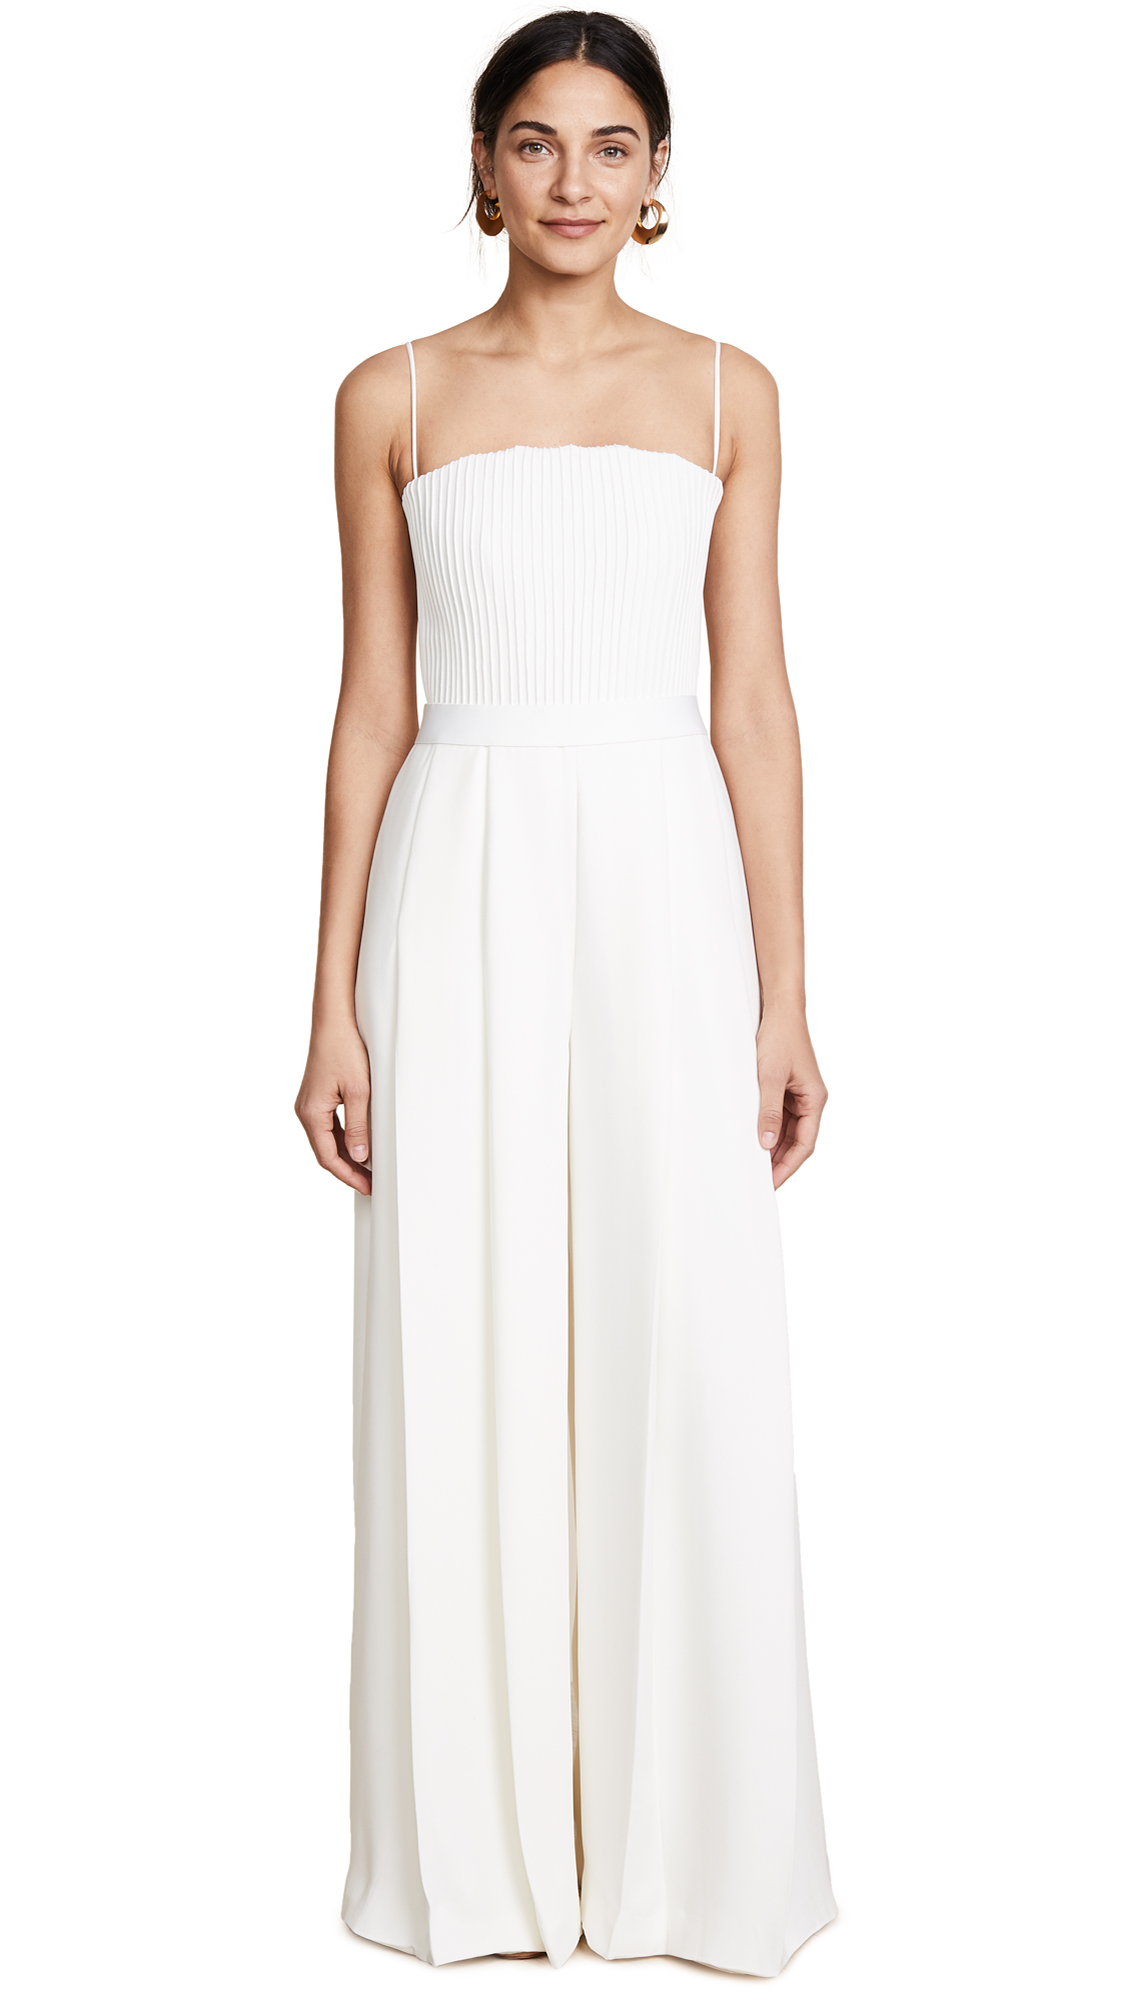 Brandon Maxwell Strapless Ribbed Bodice Jumpsuit - Ivory